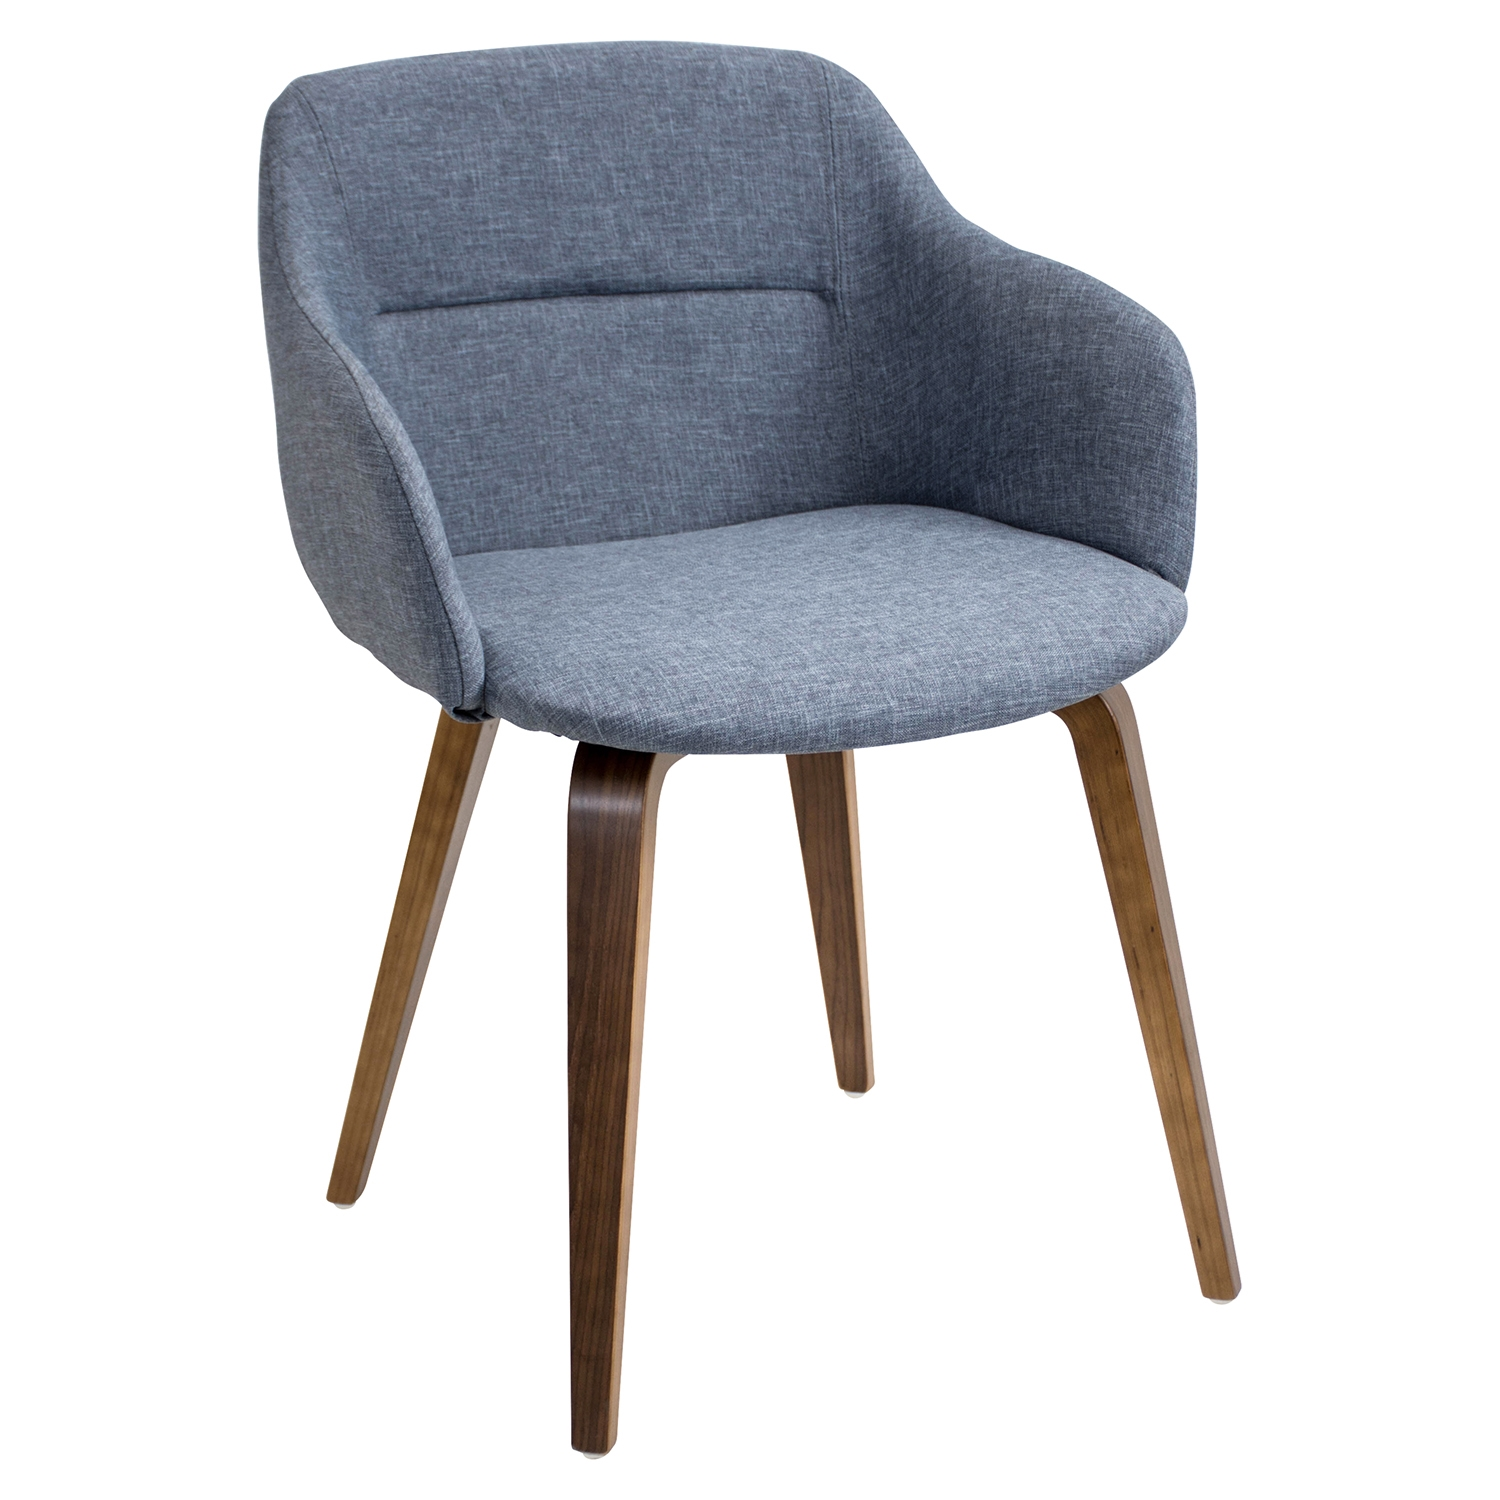 Campania Dining Chair - Blue